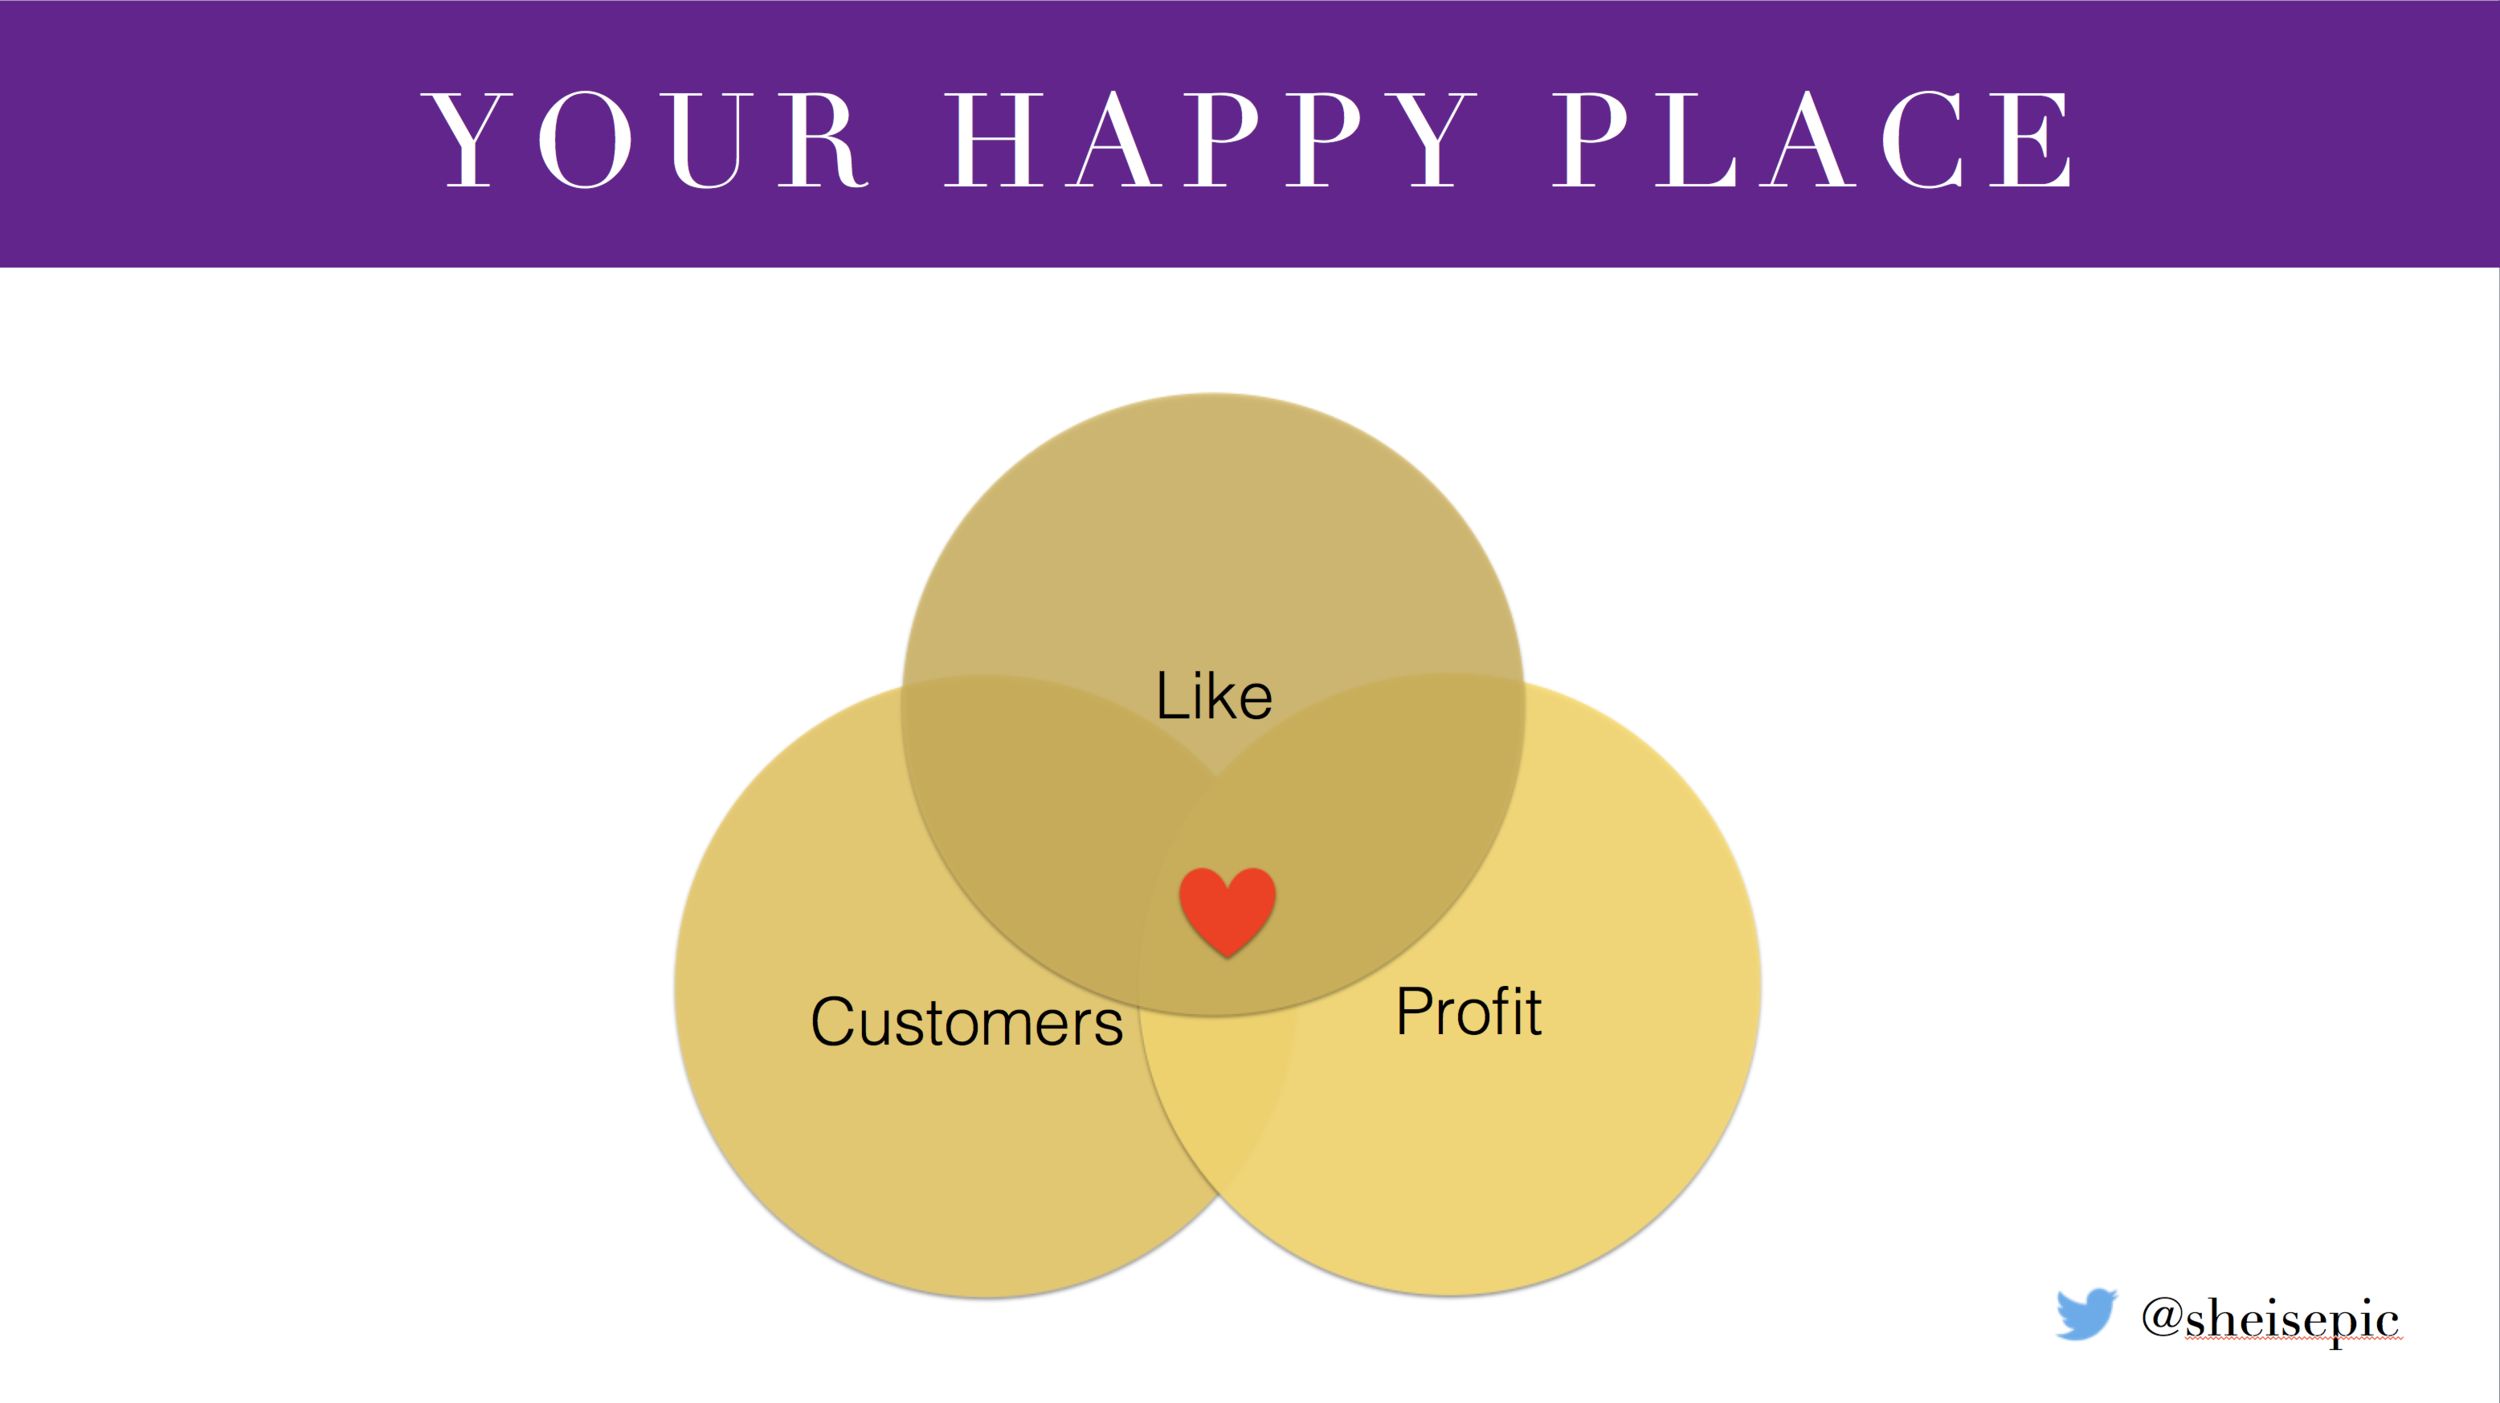 See Happy Place Online Venn Diagram Explained in Video at the end. More evil genius at work.